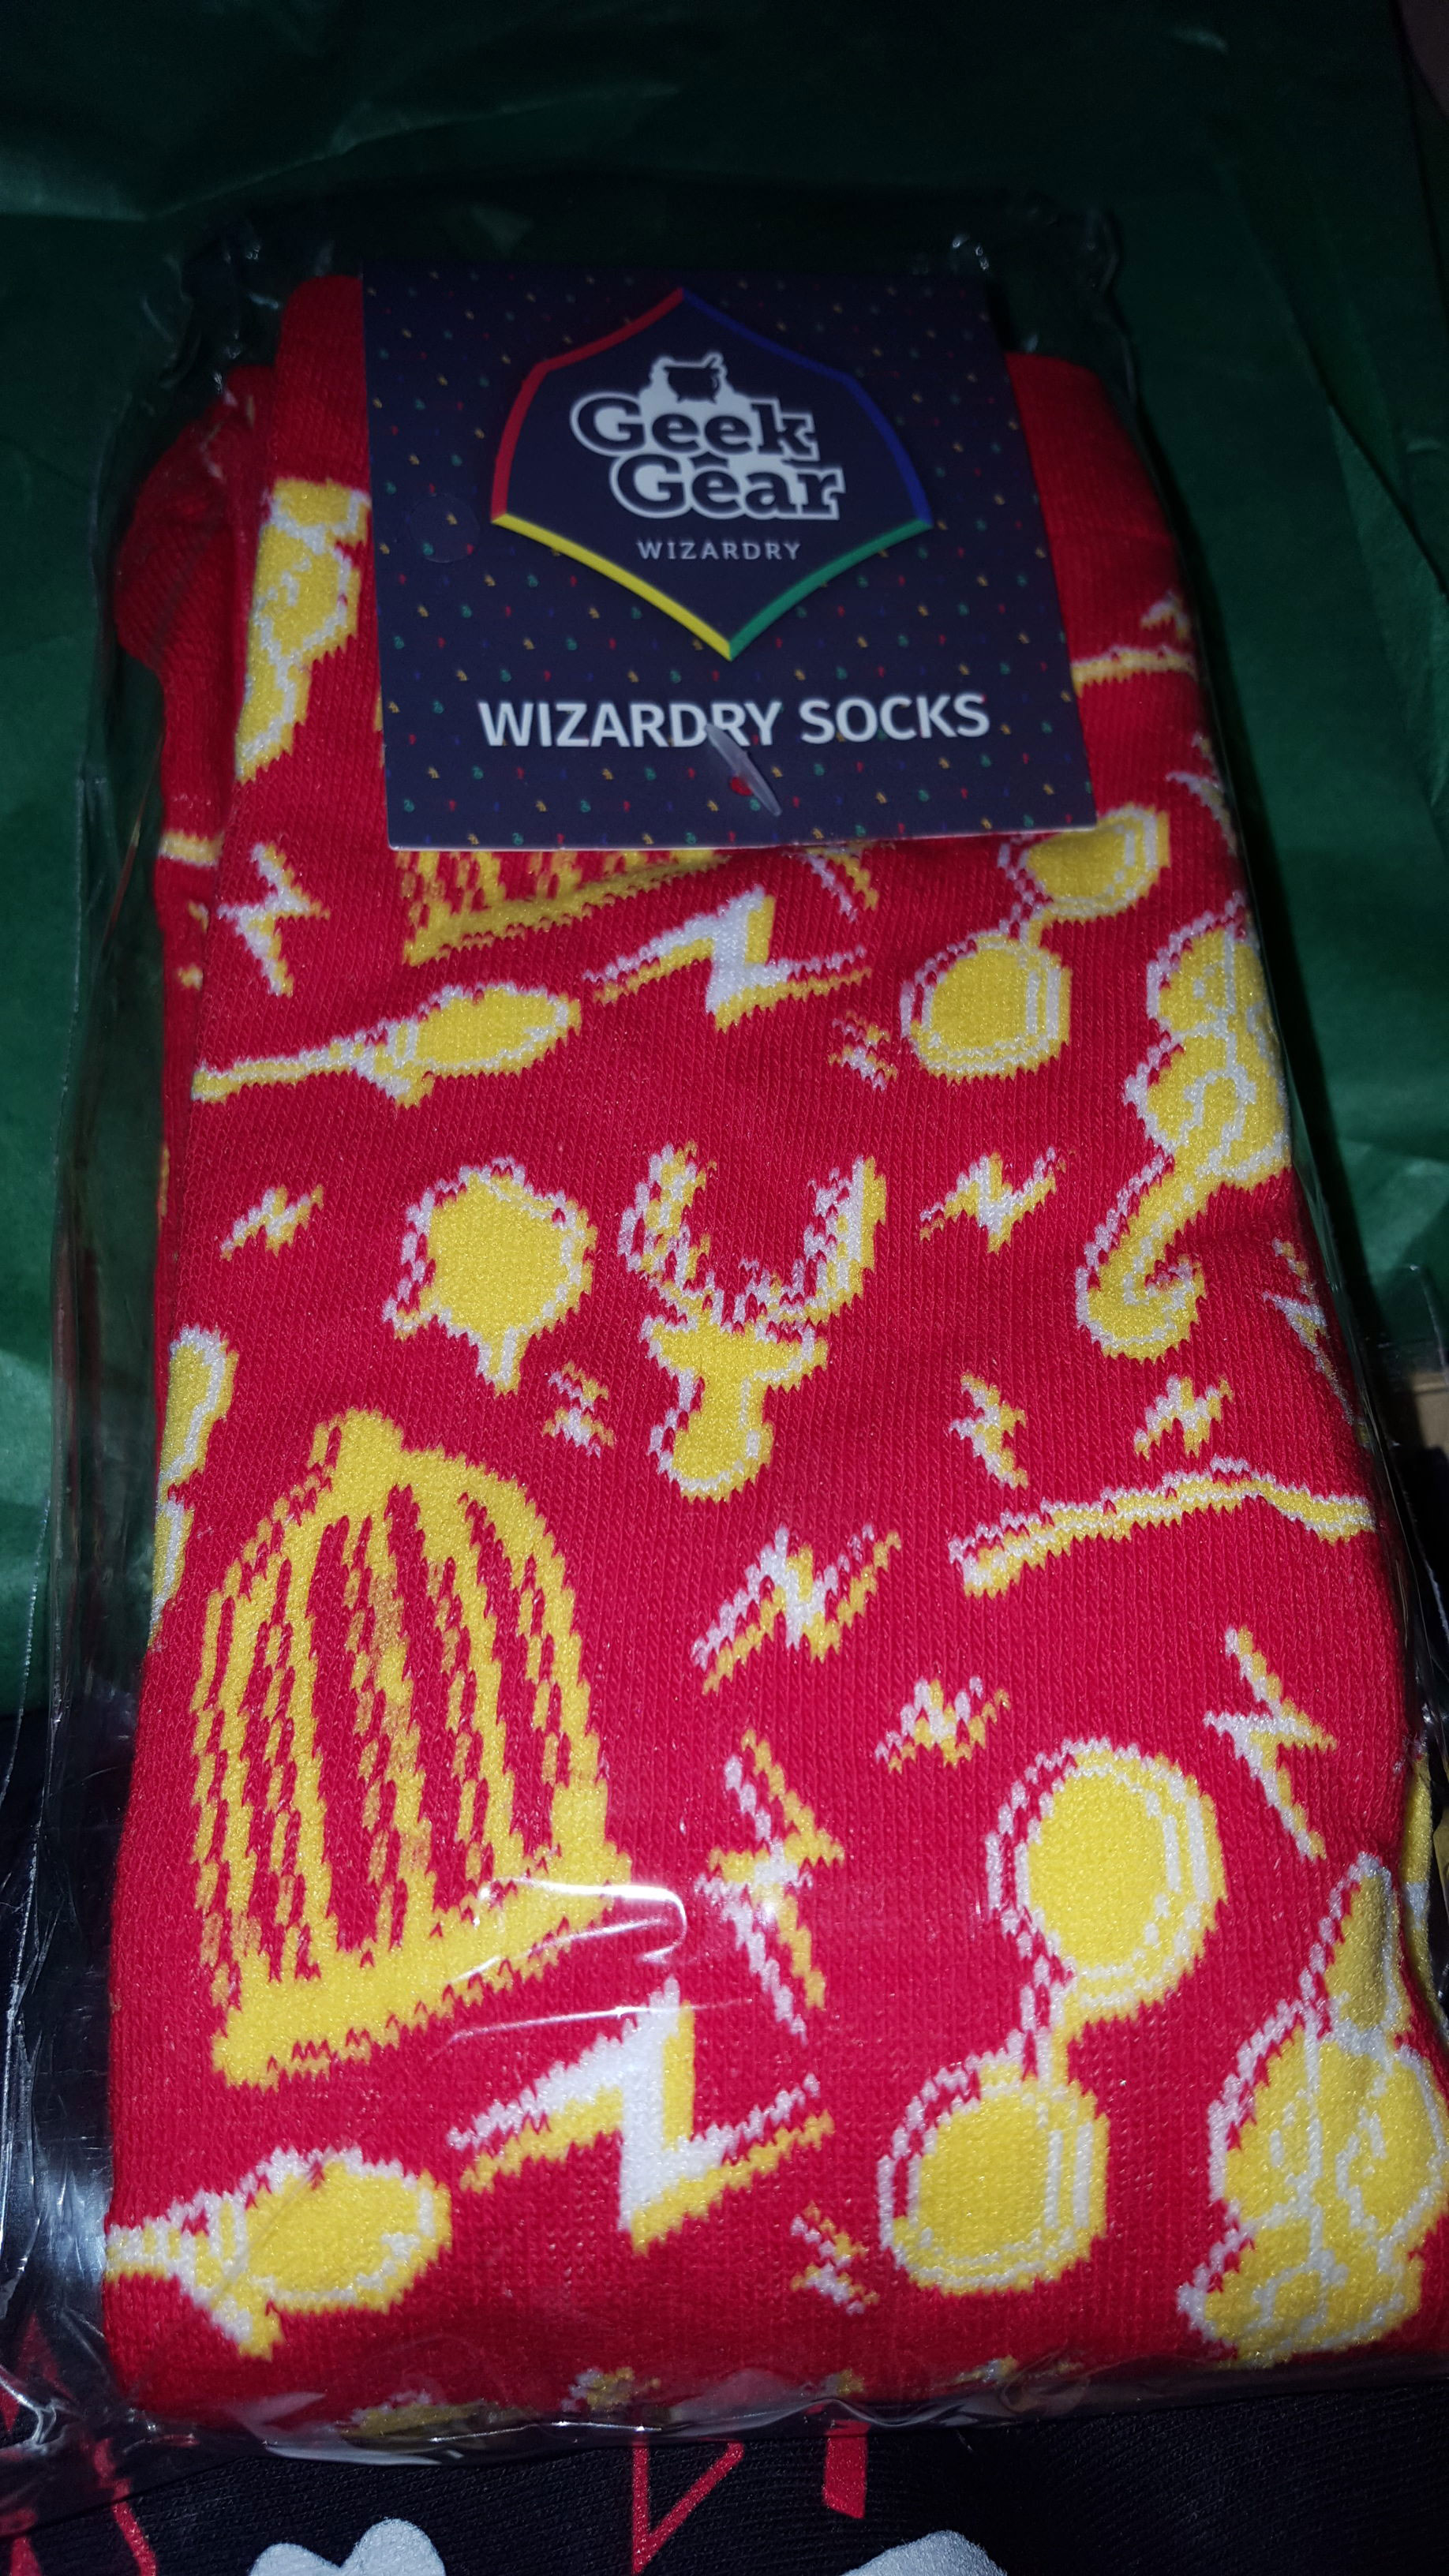 Wizardy socks in red, gold, and white, featuring lightning bolts, glasses, Snitches, brooms, stags, Dark Marks, and owl cages